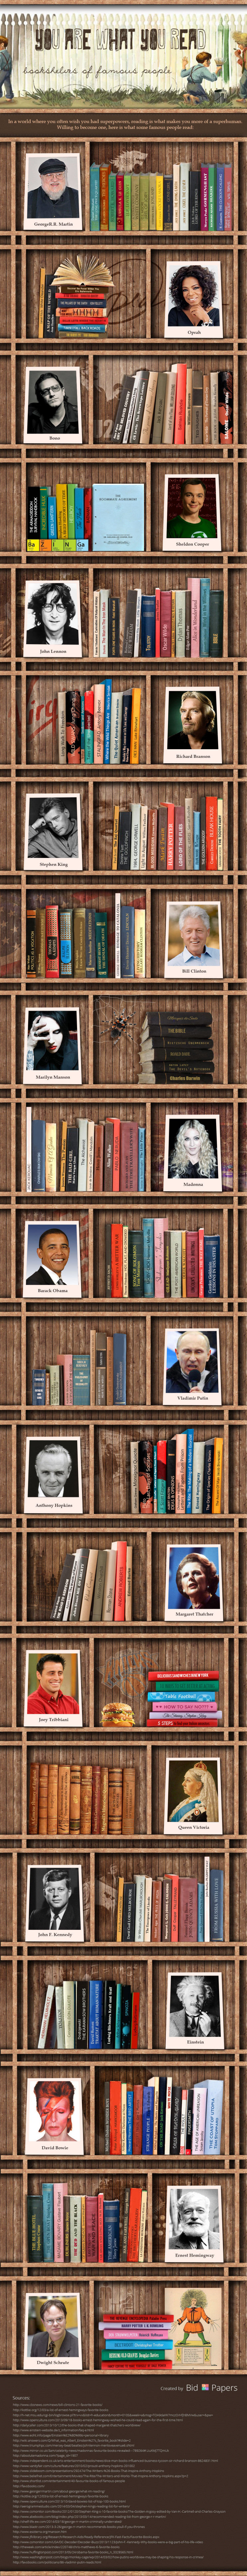 you-are-what-you-read-bookshelves-of-famous-people_5356935090238-1-e1402232234325